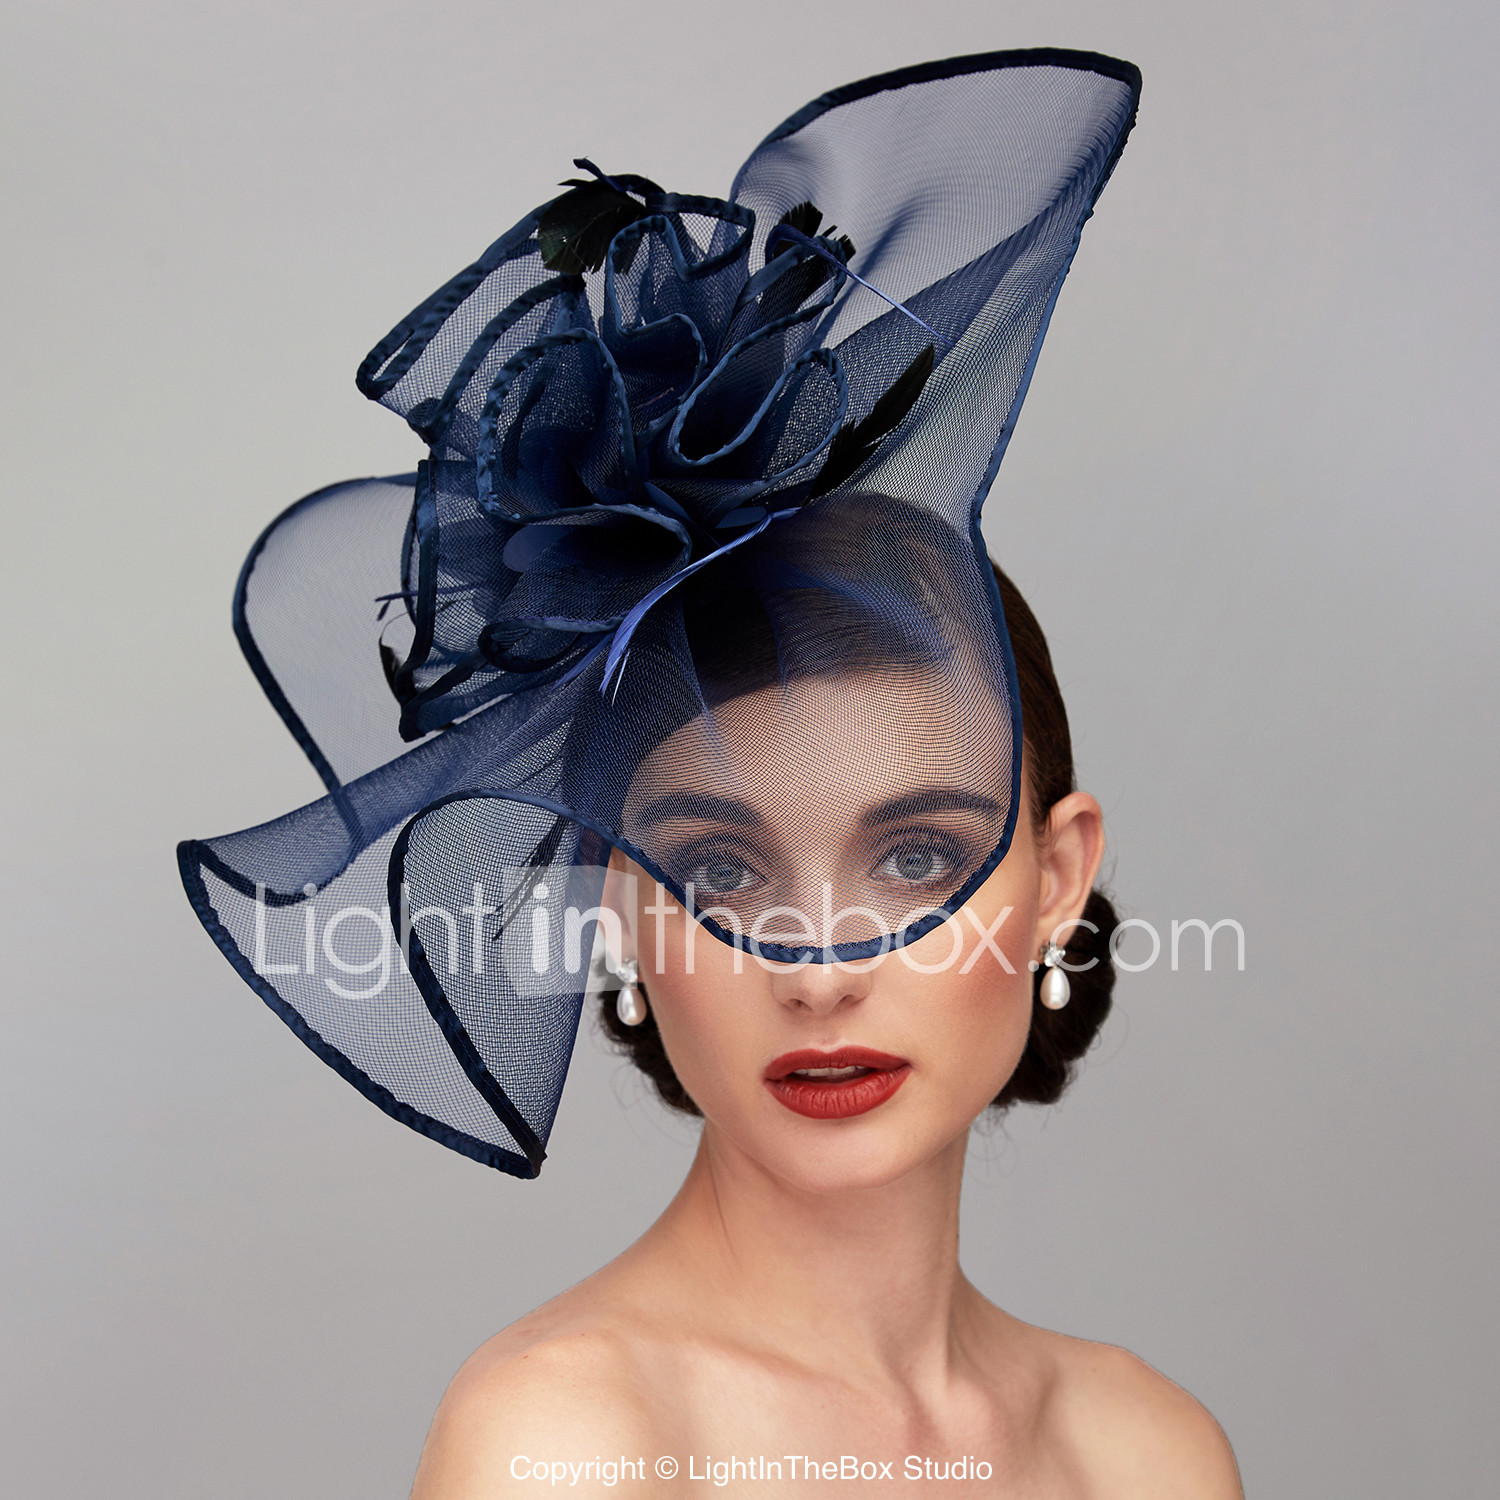 bd1d3703 Feather / Net Kentucky Derby Hat / Fascinators / Headpiece with Feather /  Floral / Flower 1pc Wedding / Special Occasion Headpiece #06894536